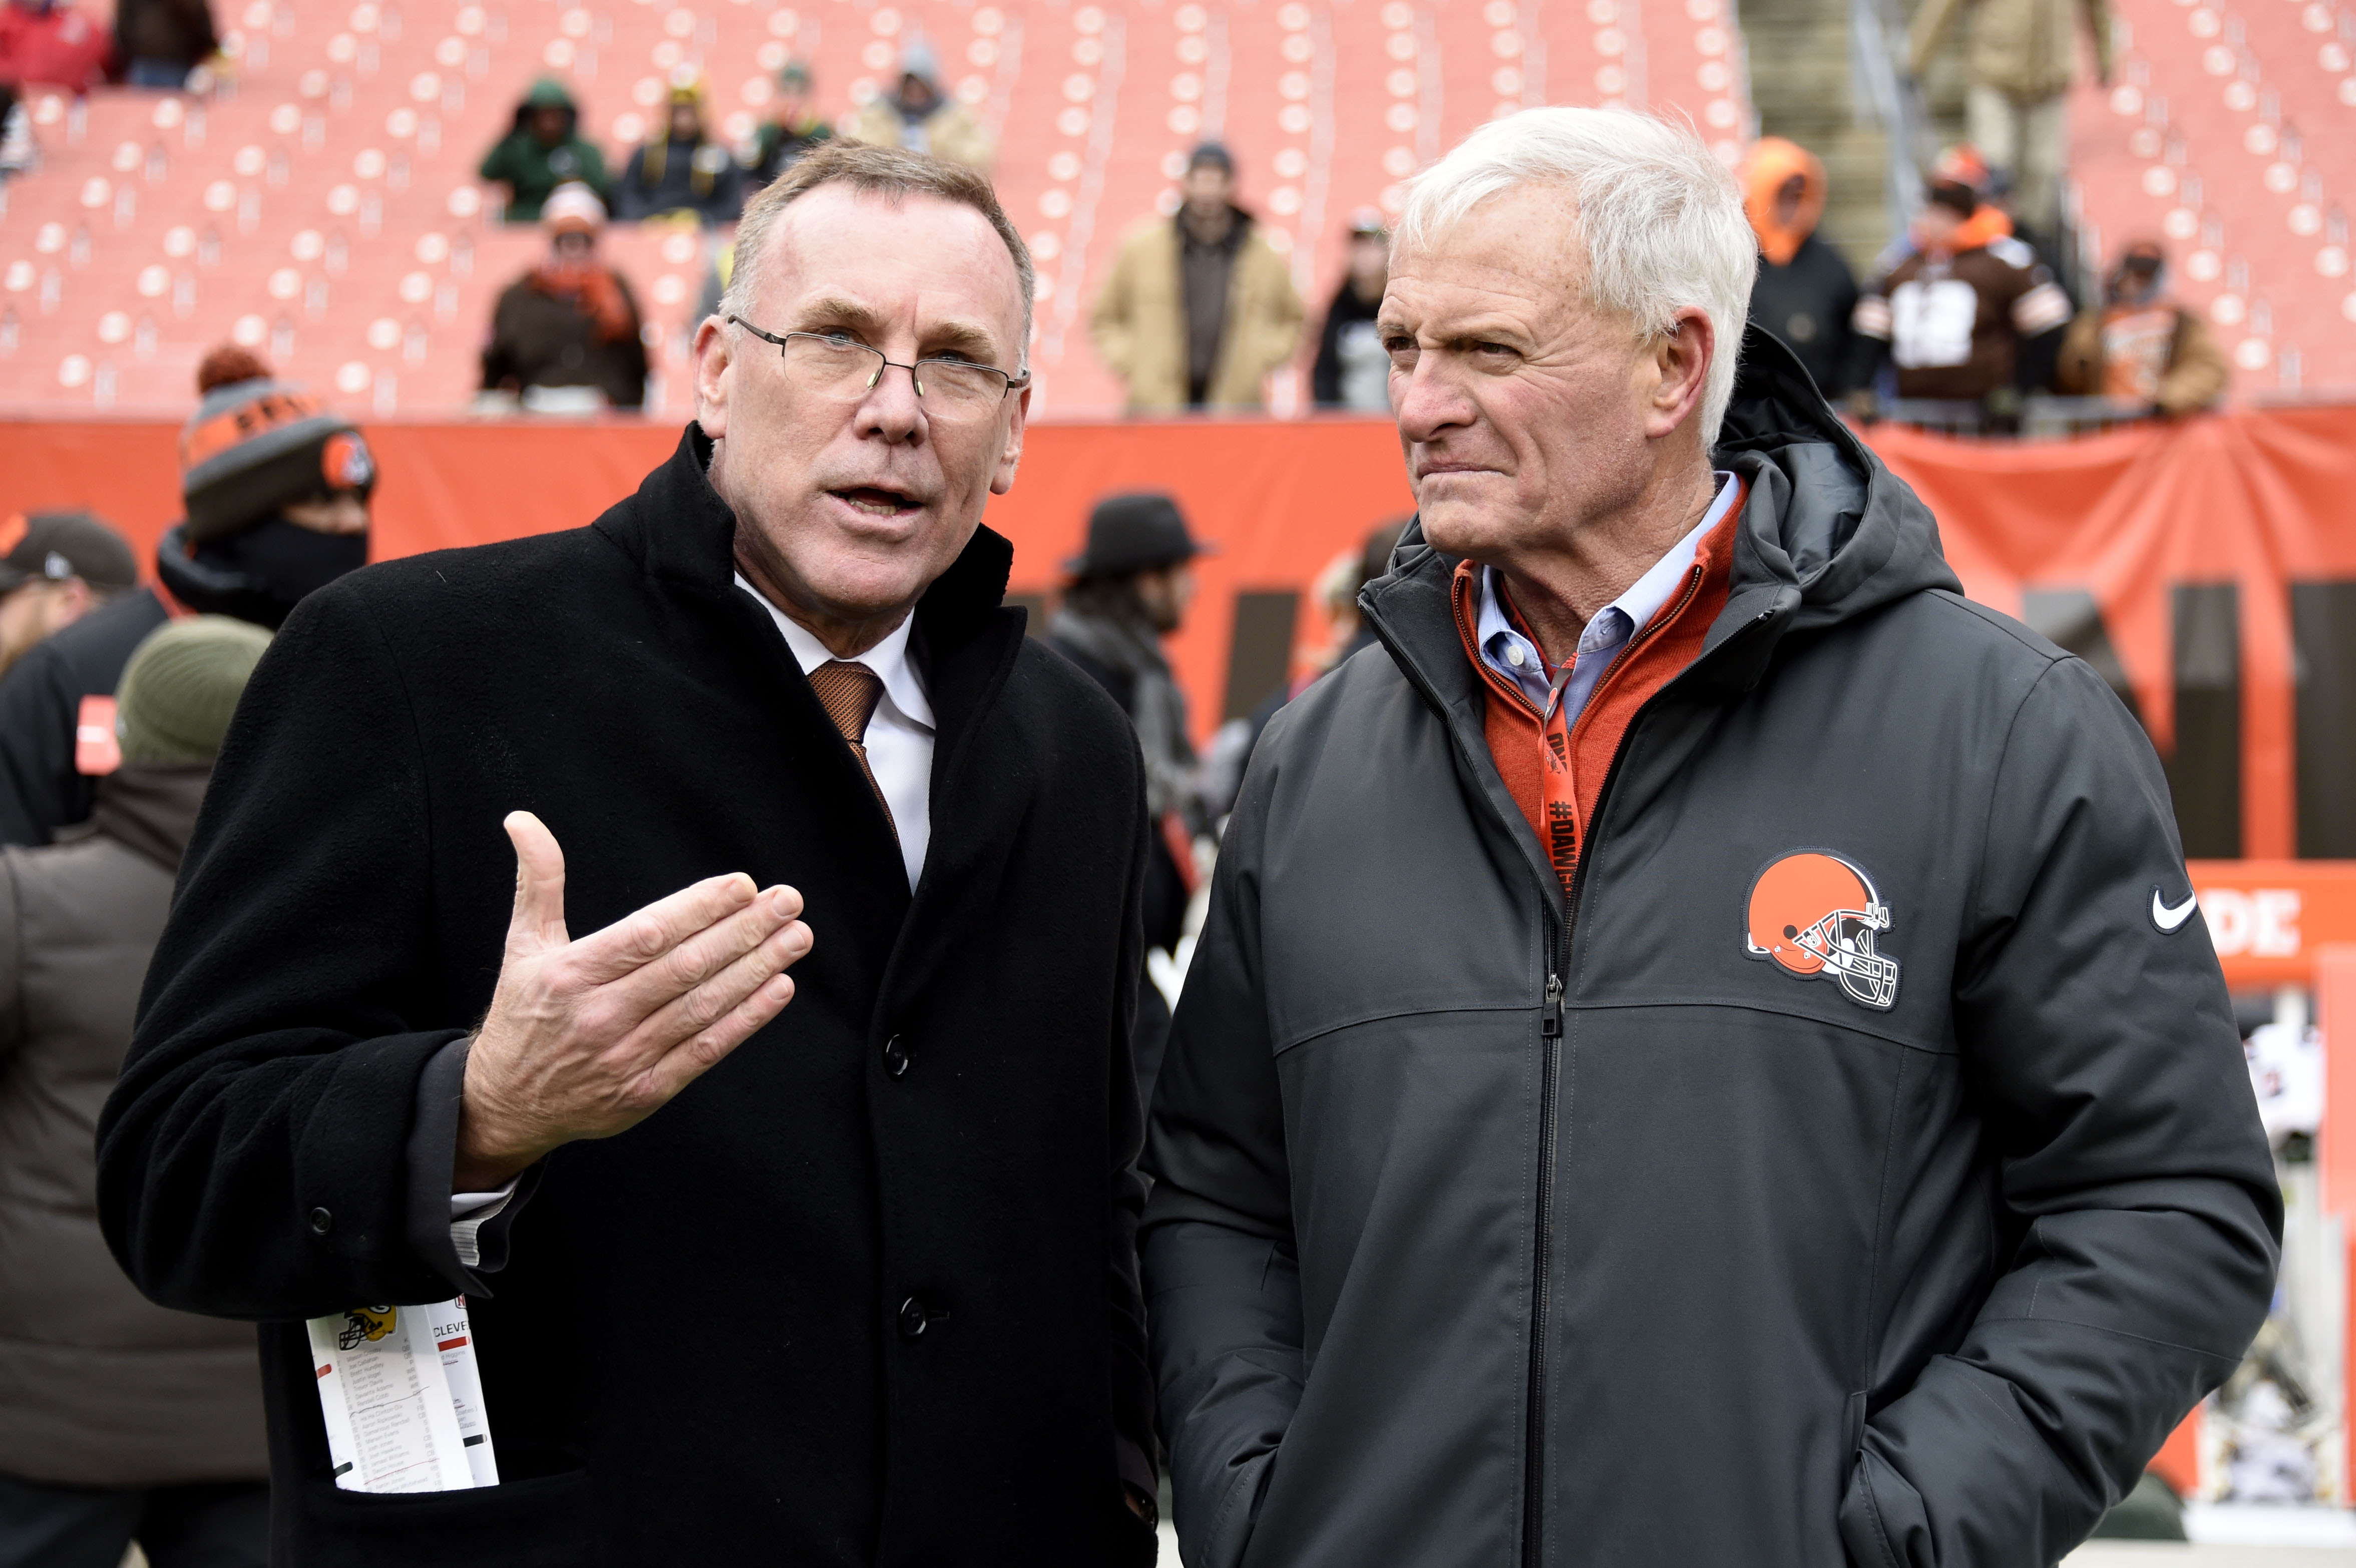 Cleveland Browns fall to 0-14 as Hue Jackson's future grows cloudier